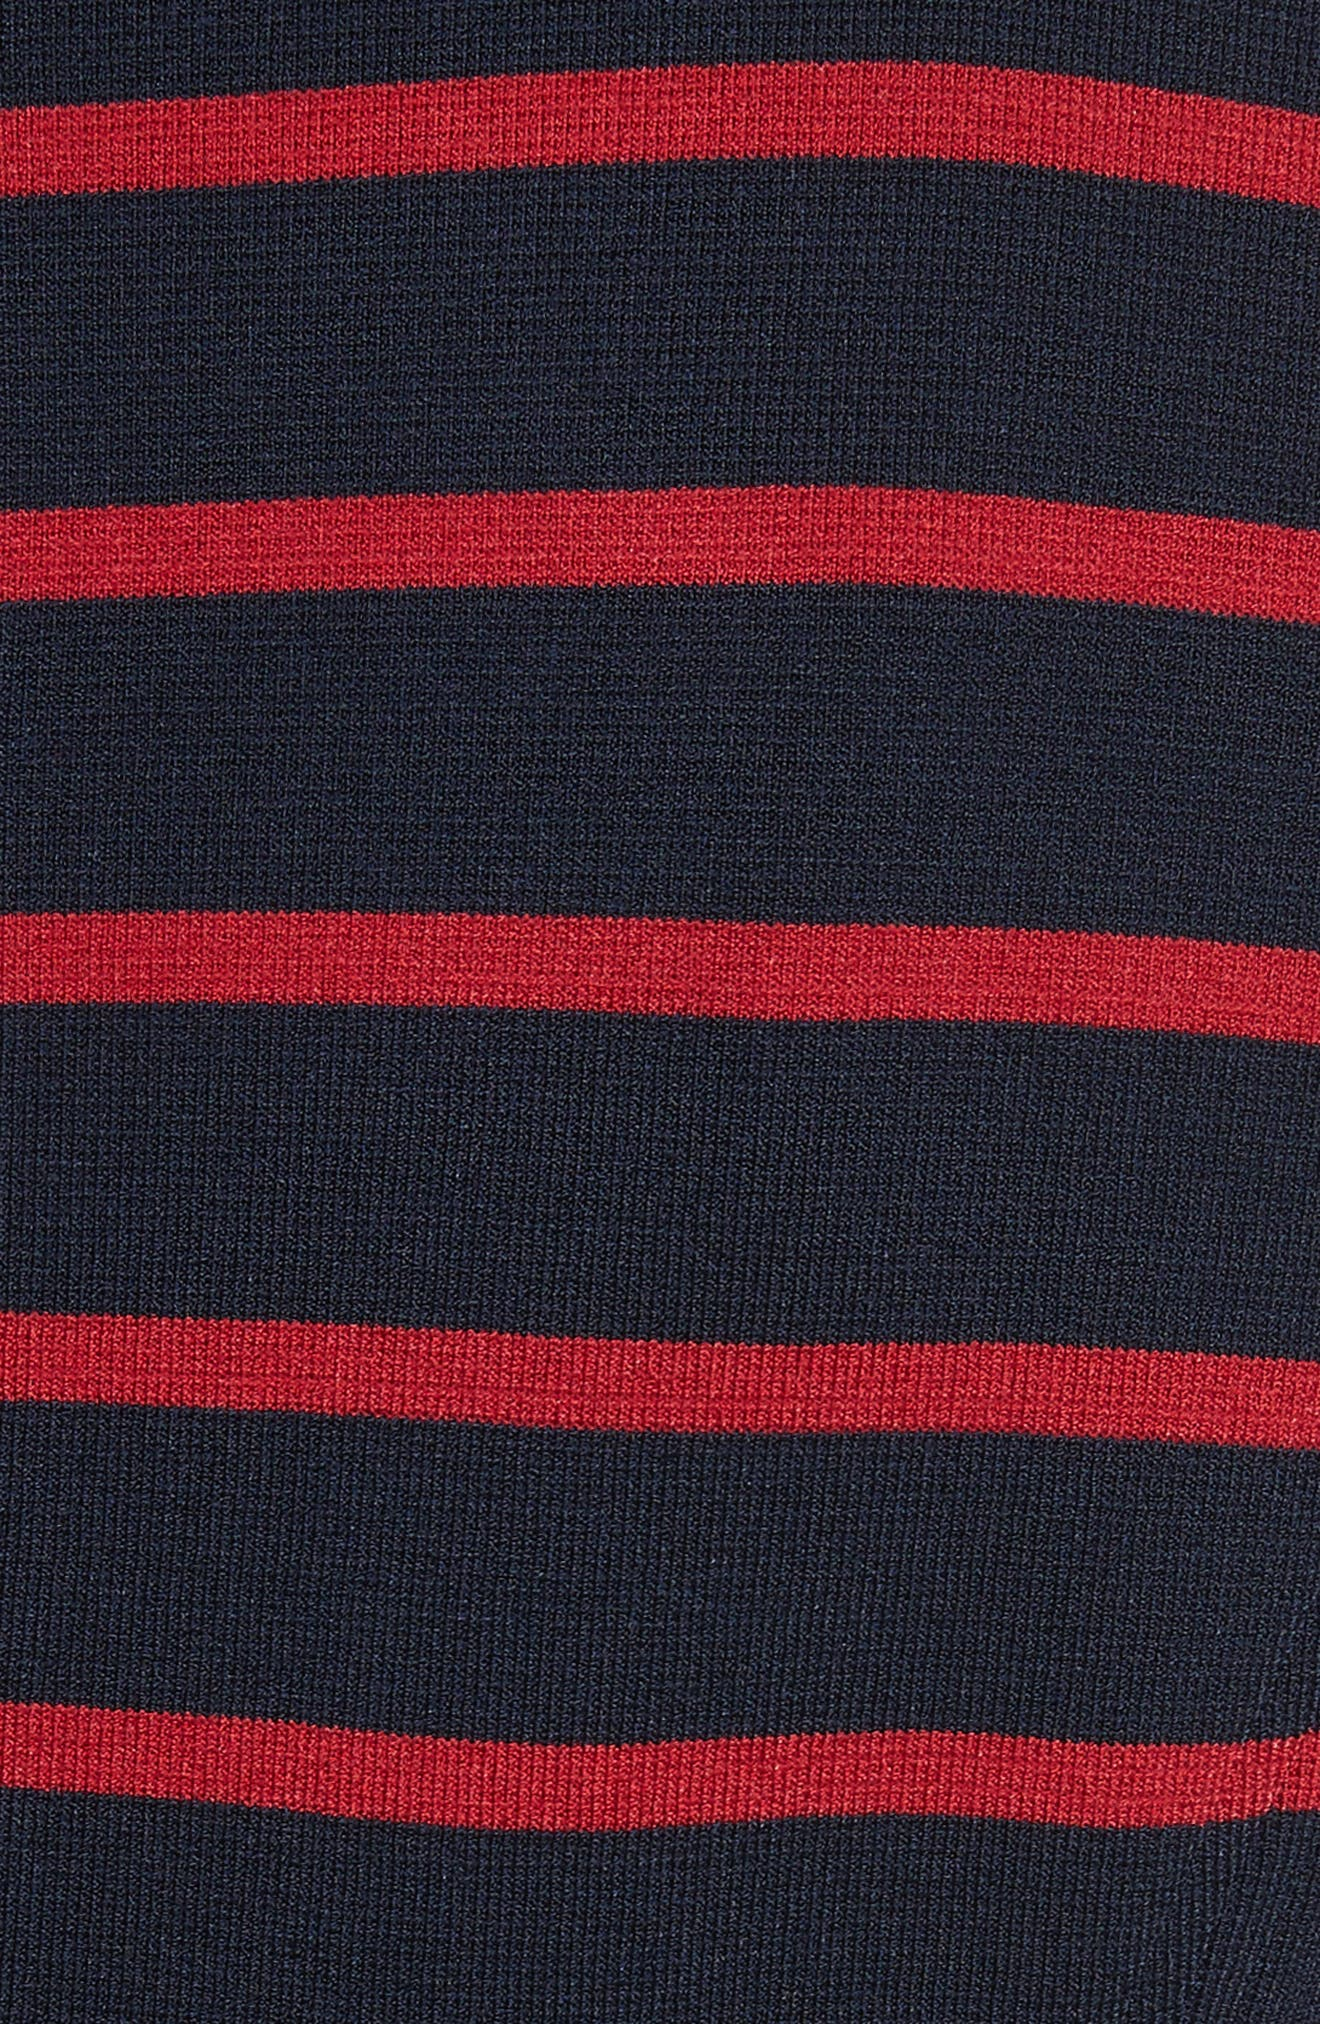 Fontana Stripe Jacket,                             Alternate thumbnail 5, color,                             Navy/ Red